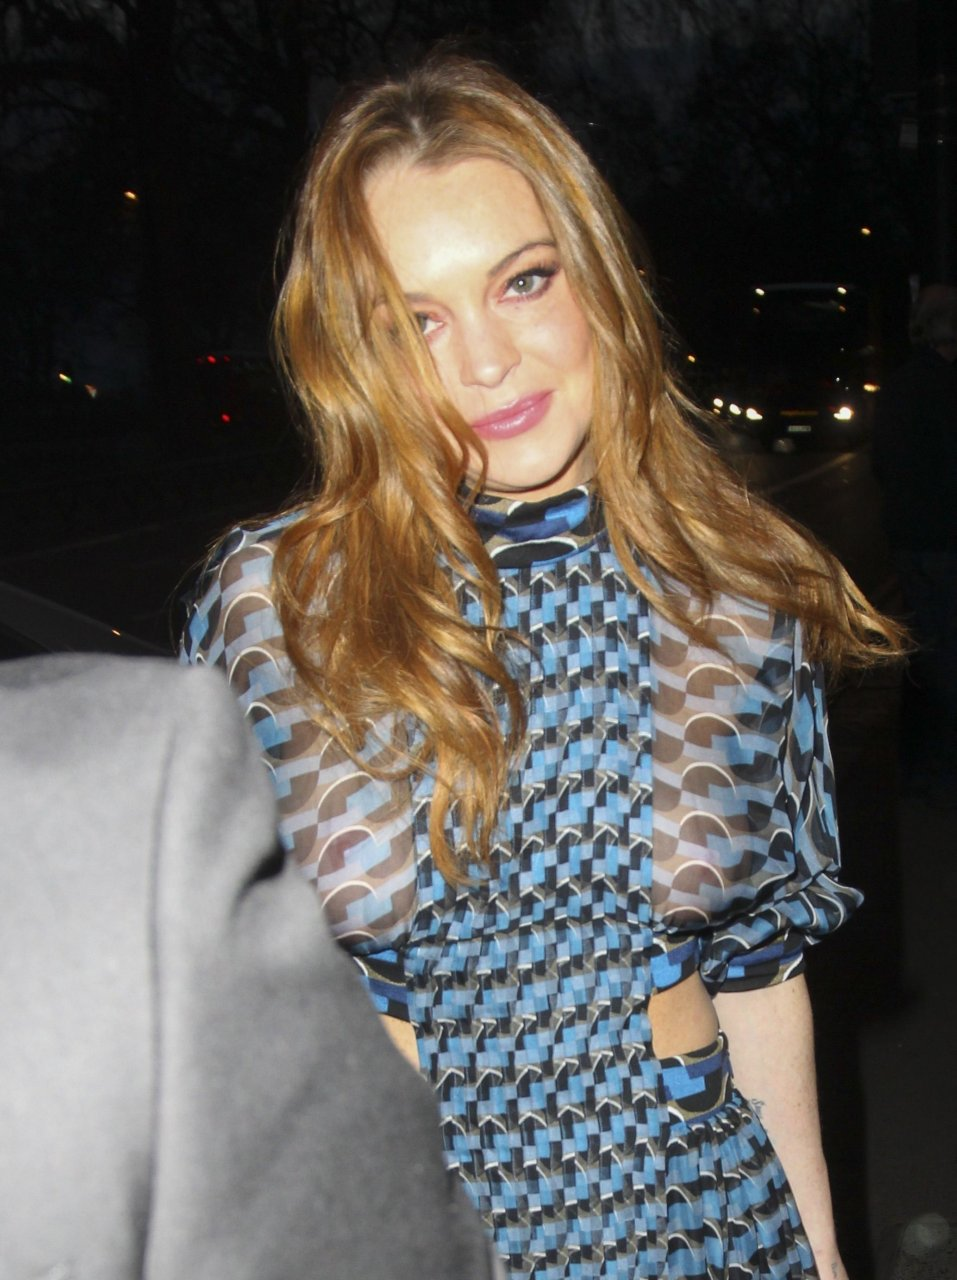 Lidnsey lohan galleries 29